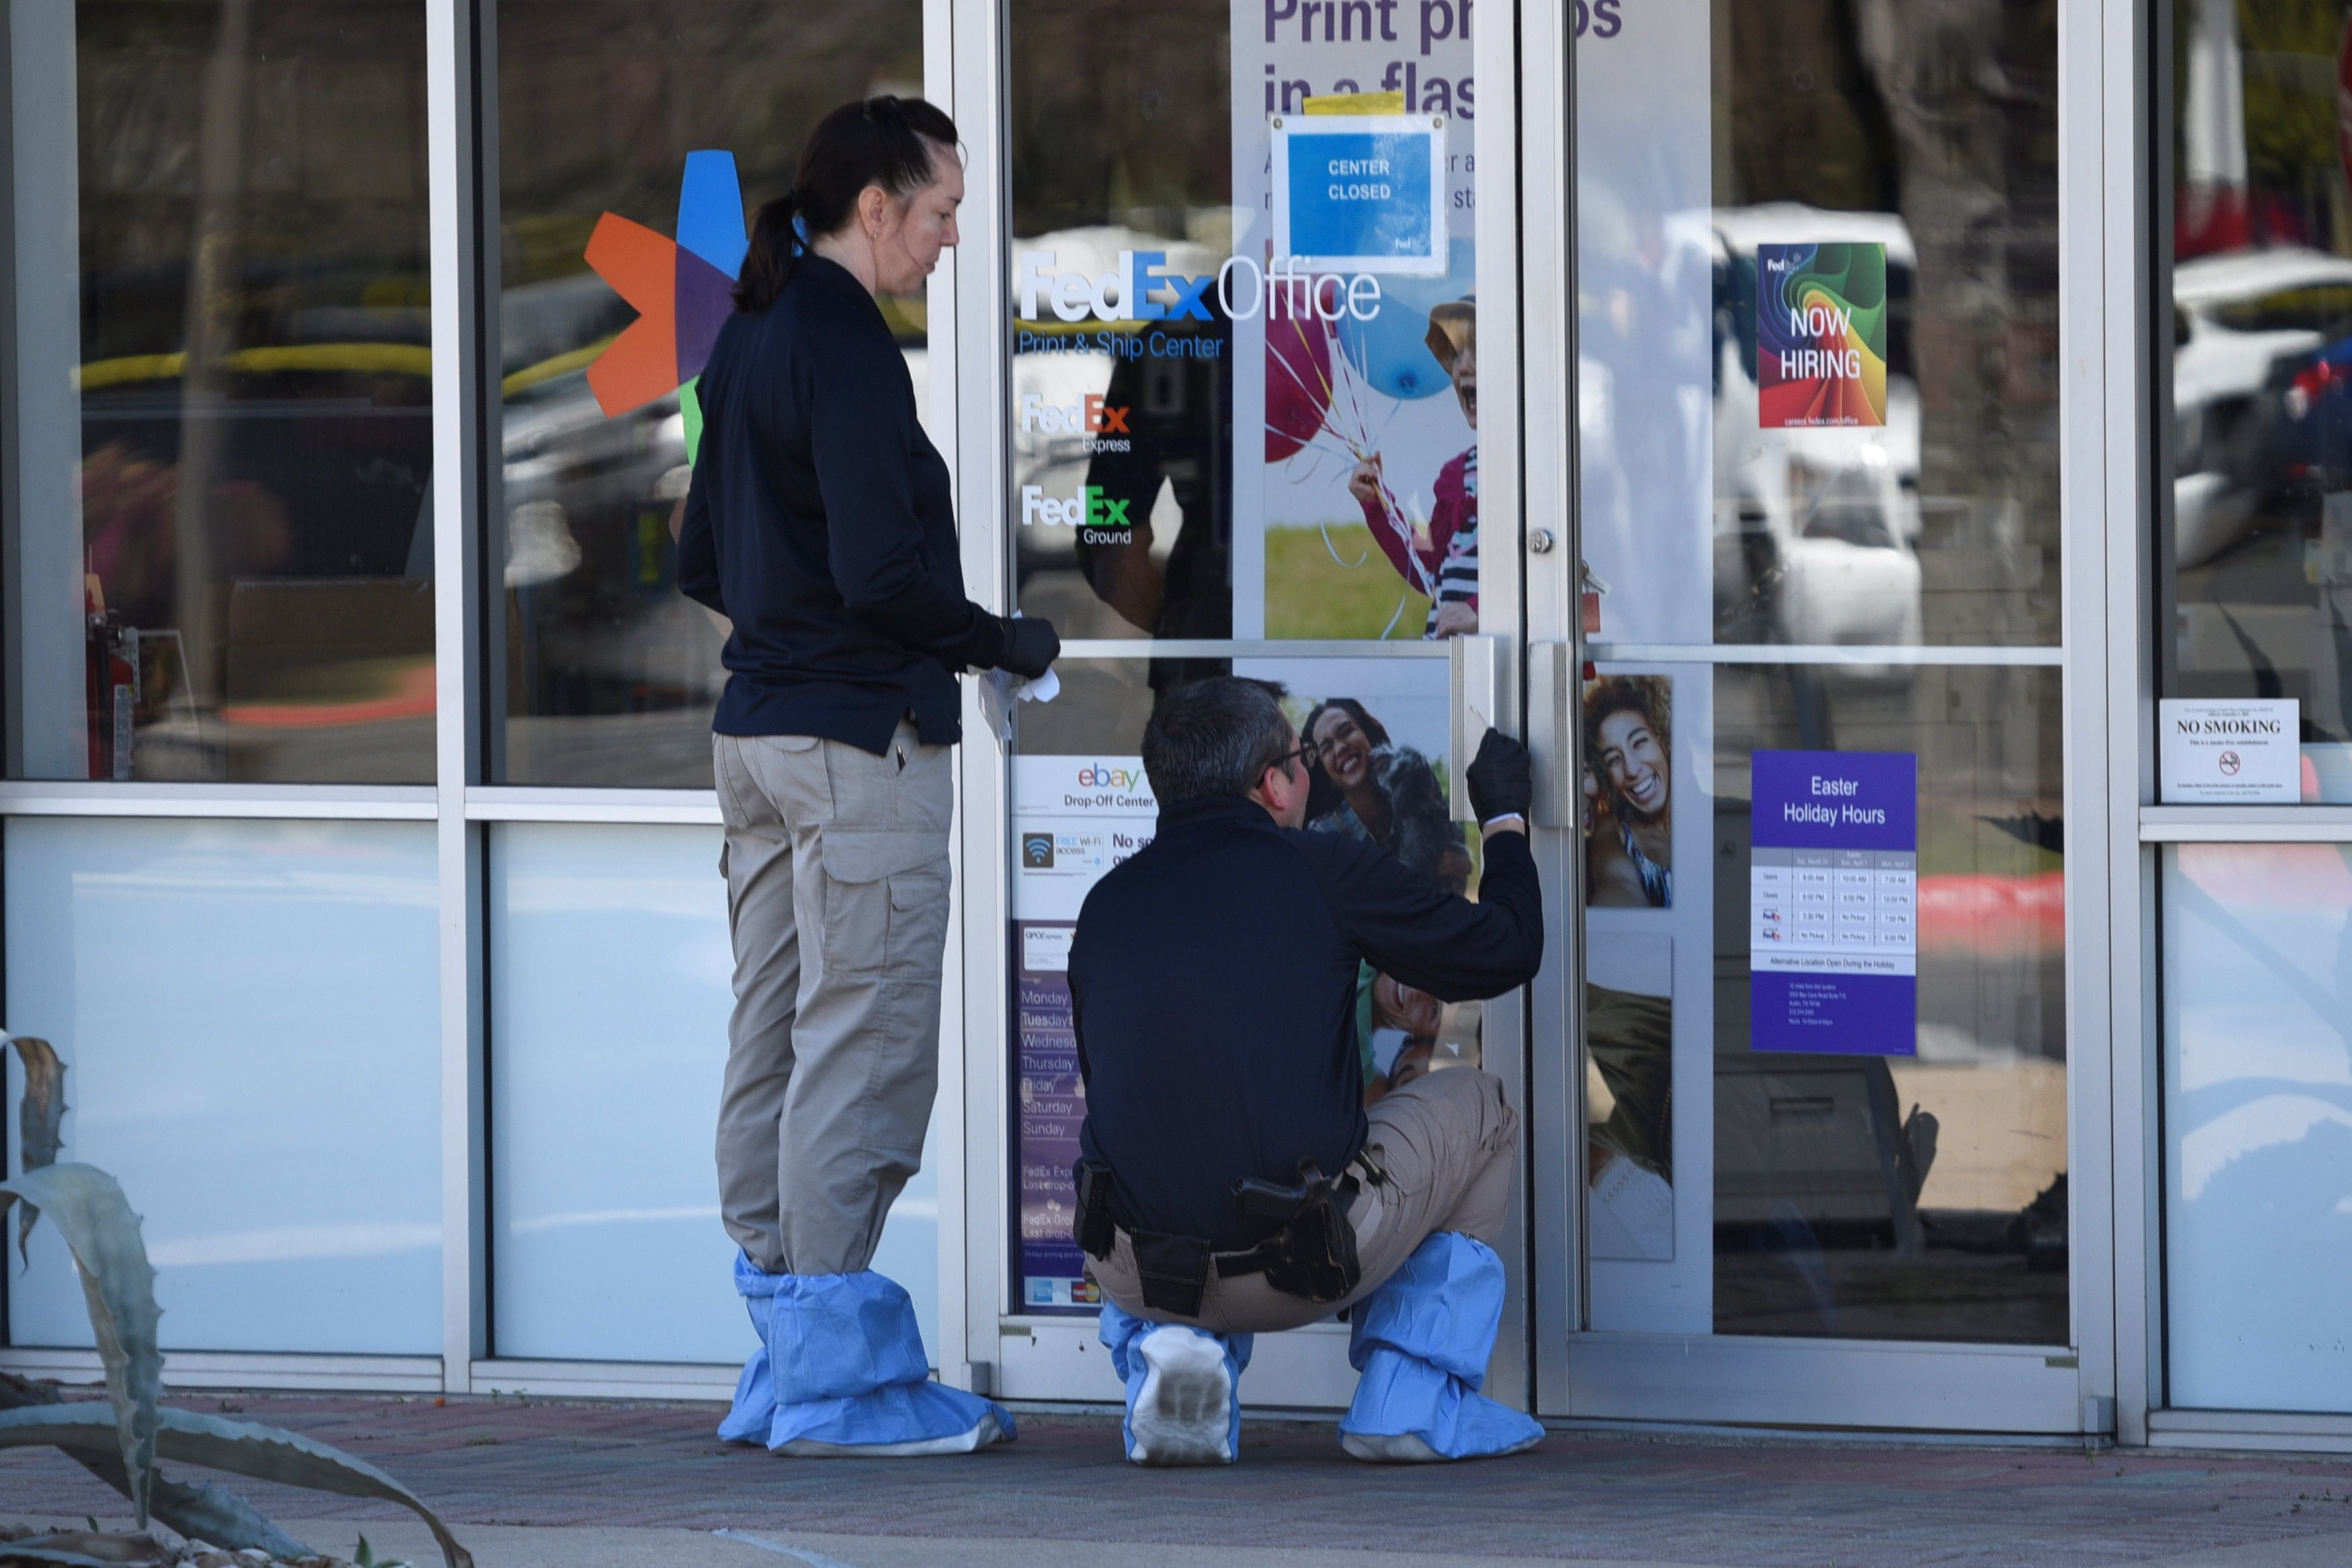 Law enforcement personnel are seen gathering evidence outside a FedEx Store which was closed for investigation, in Austin, Texas